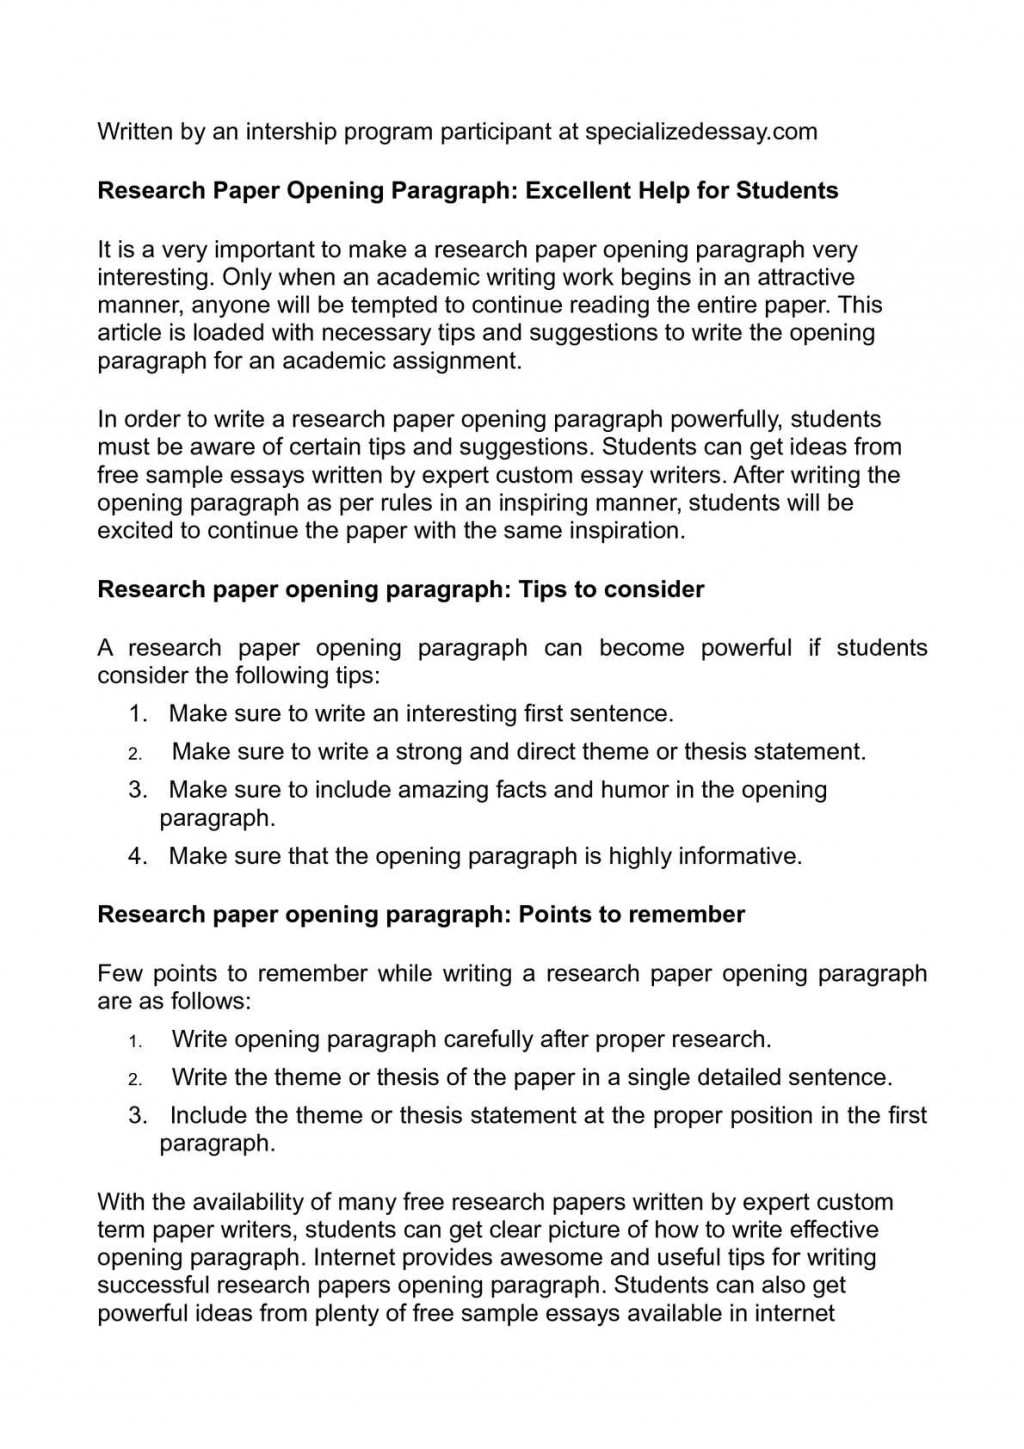 003 Research Paper Good Opening Paragraph For Rare Introductory A Conclusion Introduction Large